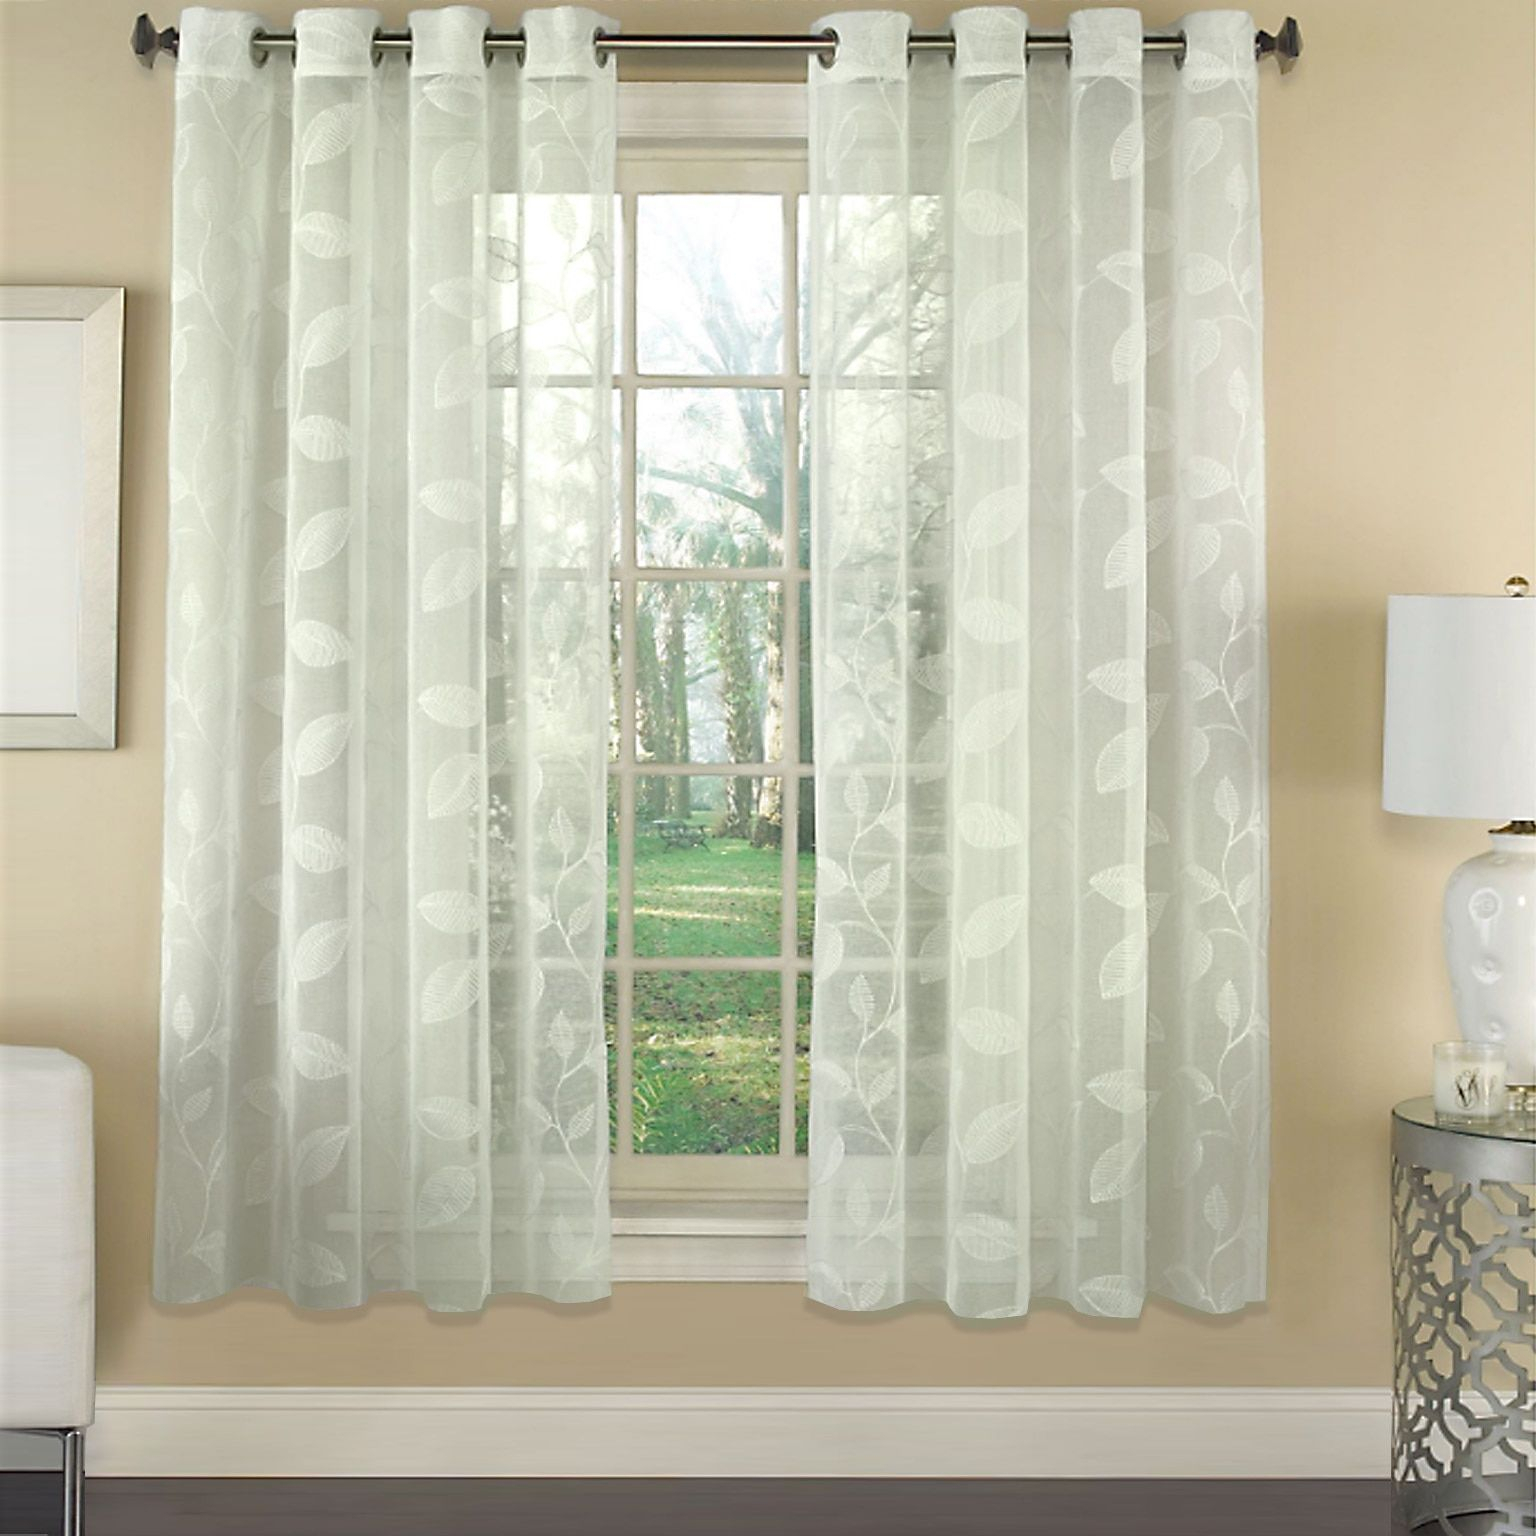 Avery Semi-Sheer Faux Linen Grommet Window Curtain Panel regarding Luxury Collection Venetian Sheer Curtain Panel Pairs (Image 4 of 20)